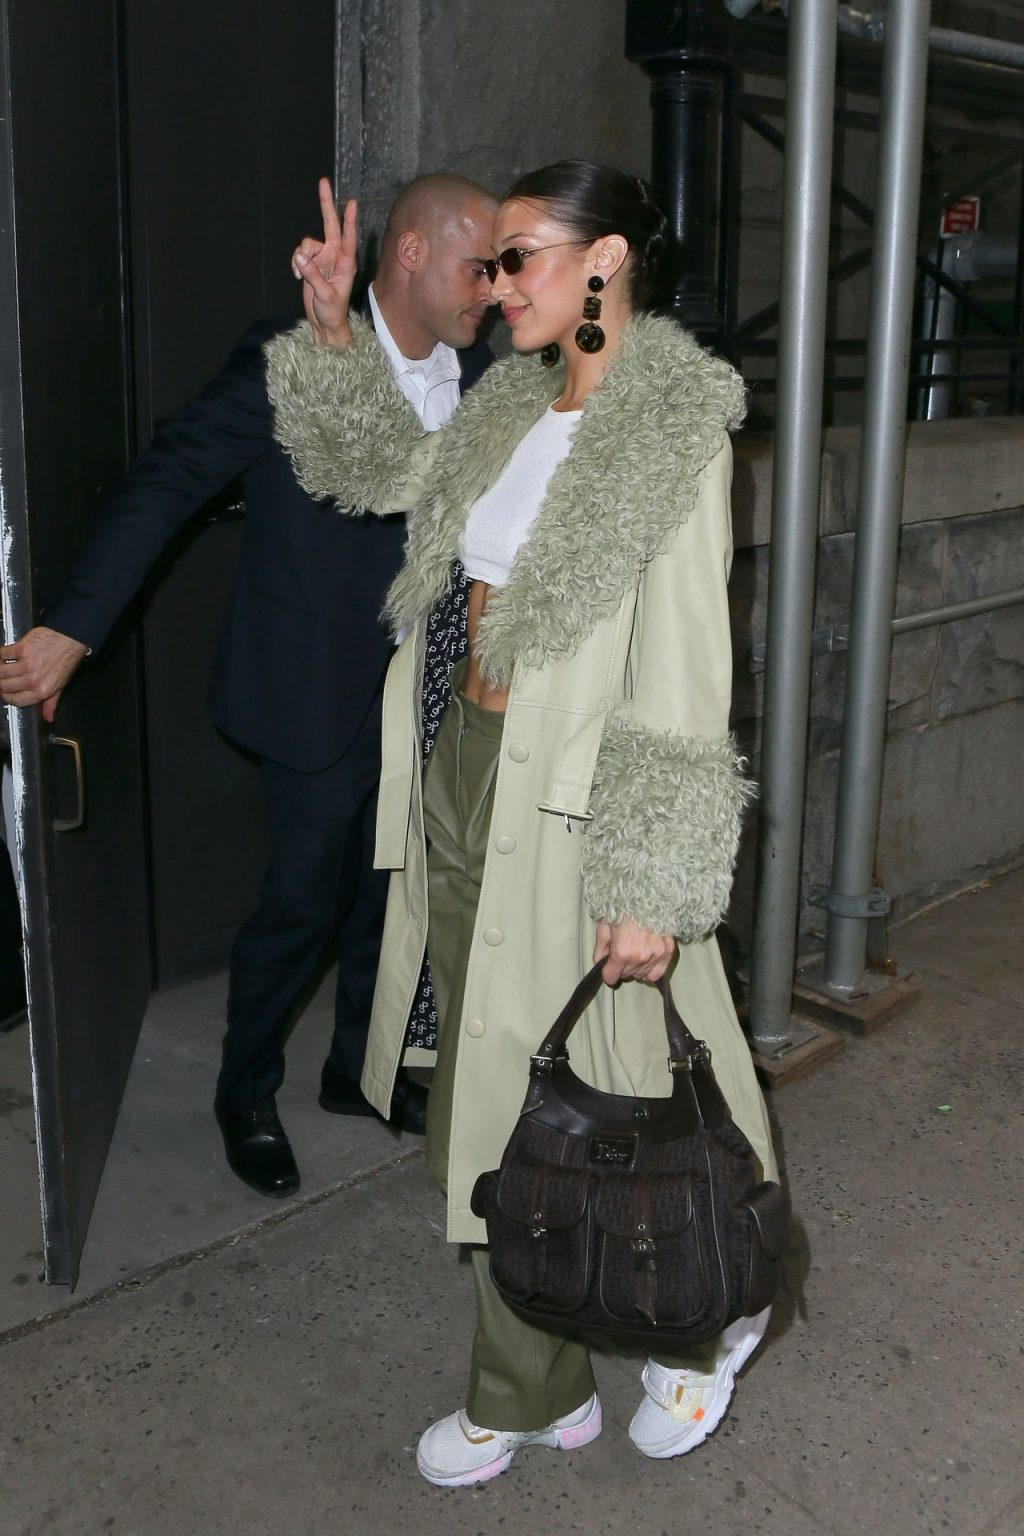 Bella Hadid See through The Fappening Blog 14 1024x1536 - Braless Bella Hadid Arrives at the Park Avenue Armory for the Marc Jacobs Fashion Show (59 Photos)